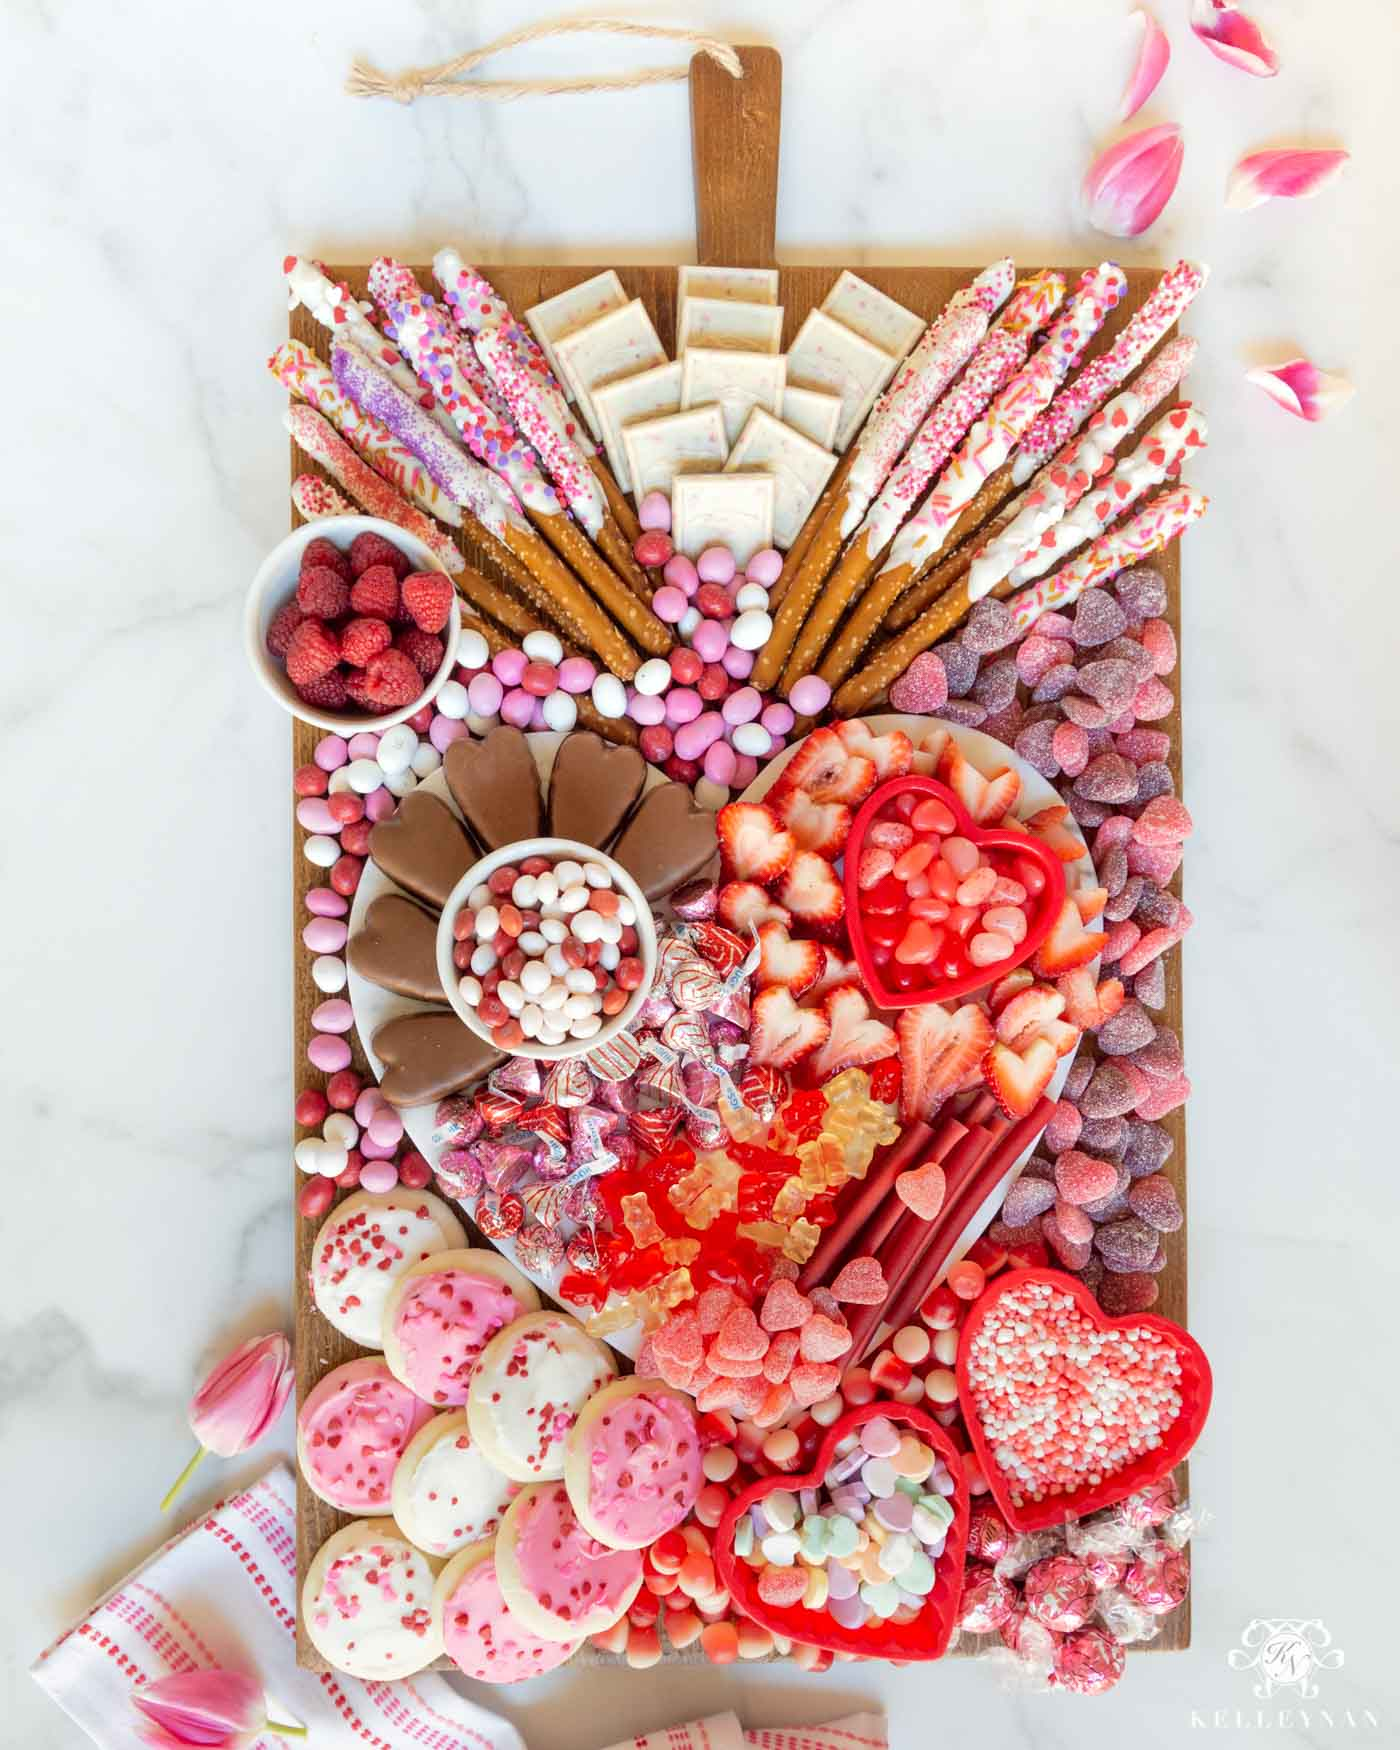 Valentine's Day Candy Board (Covered with candies, sweets, and treats!)